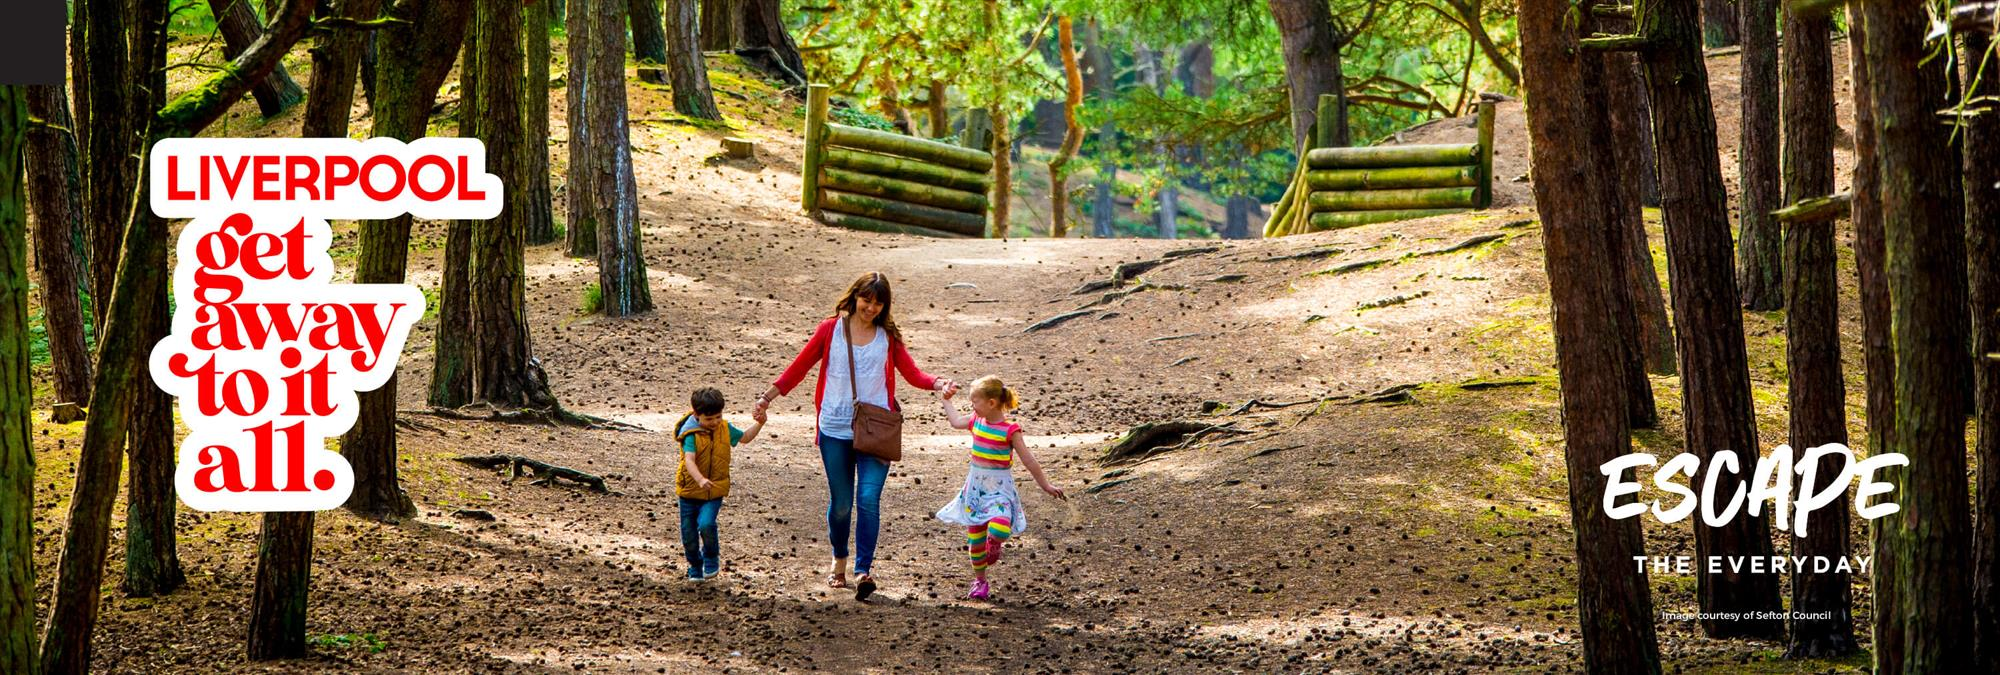 A family of one adult and two children walk through the Formby Woodland in the sun. They are holding hands and smiling.